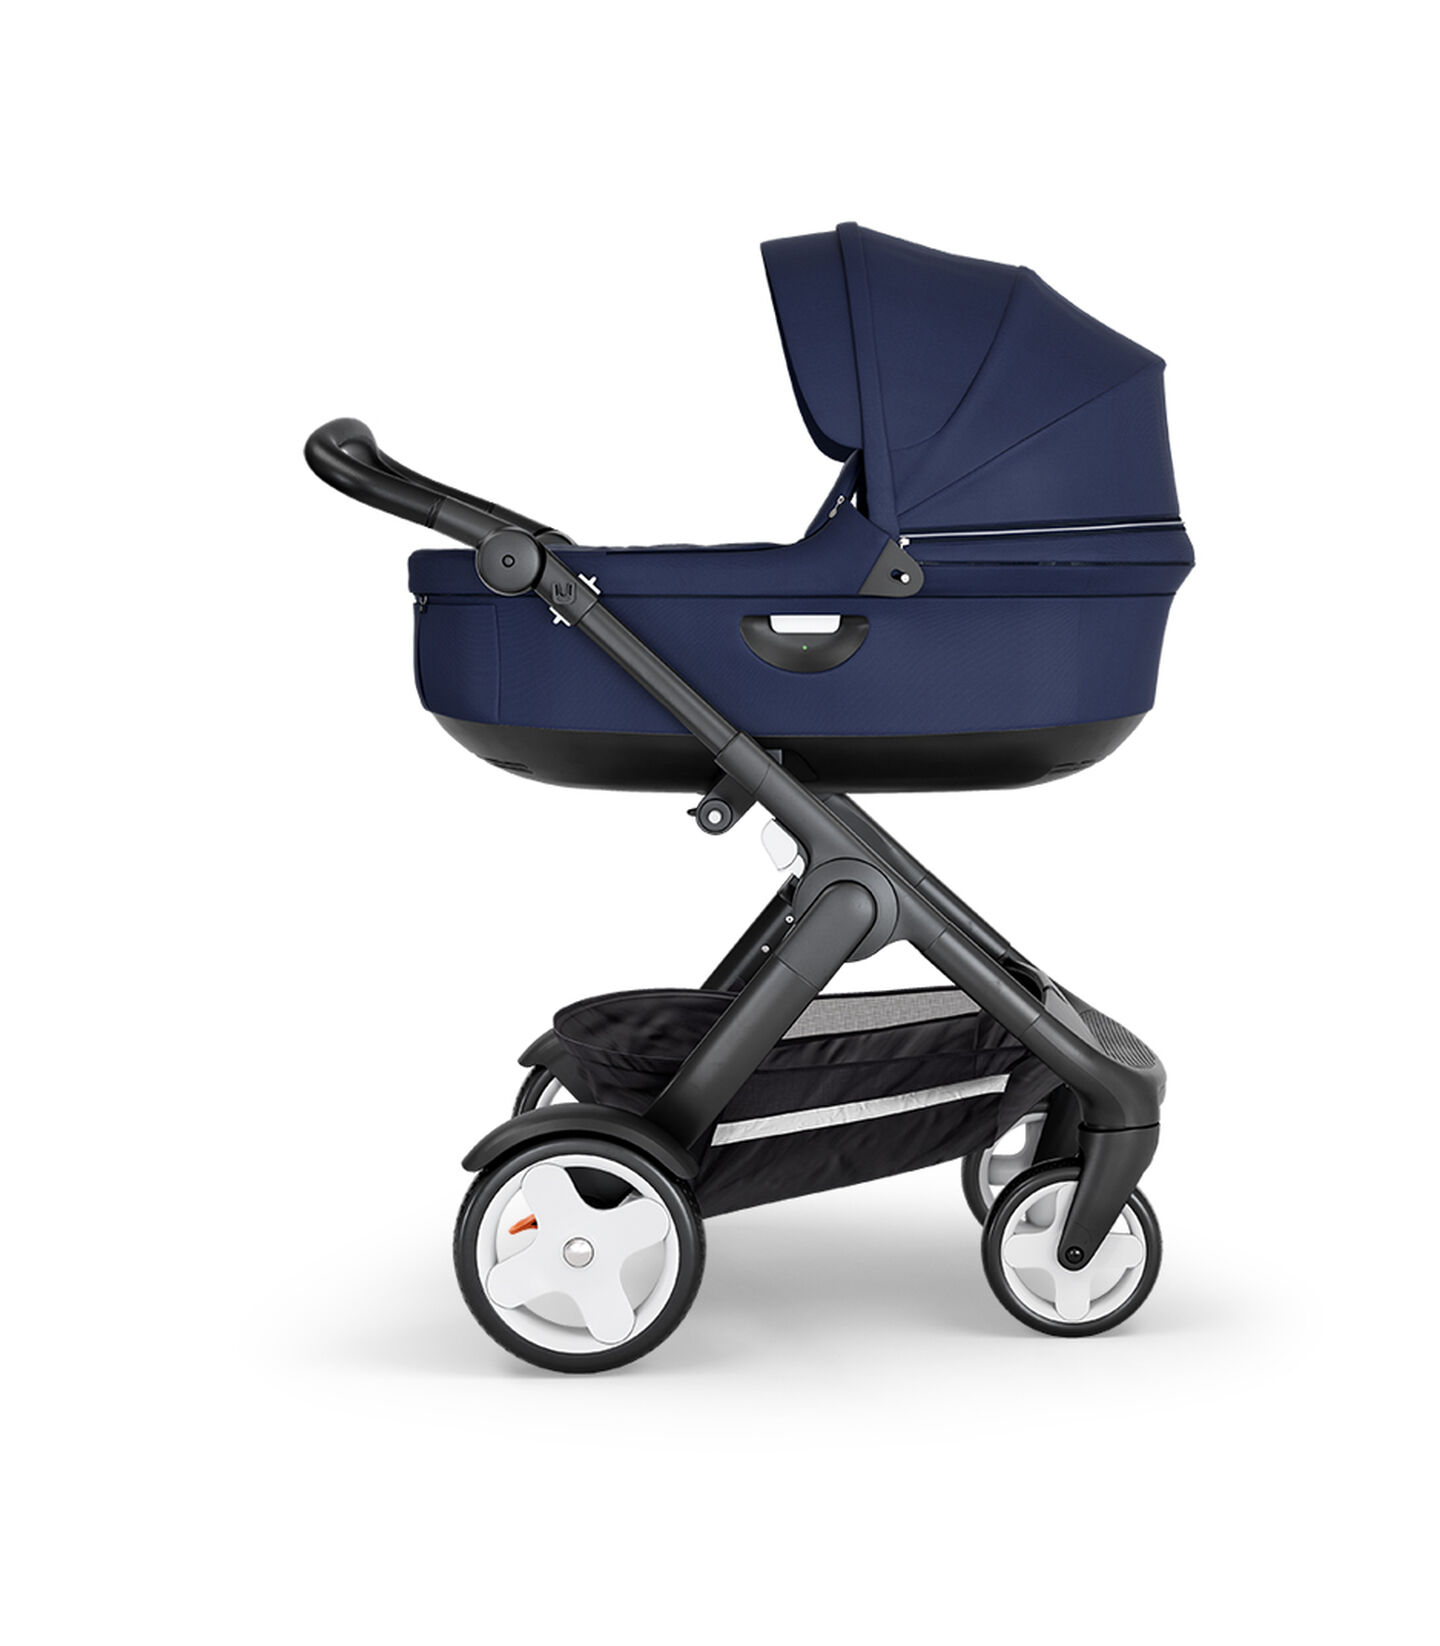 Stokke® Trailz™ with Black Chassis, Black Leatherette and Classic Wheels. Stokke® Stroller Carry Cot, Deep Blue.